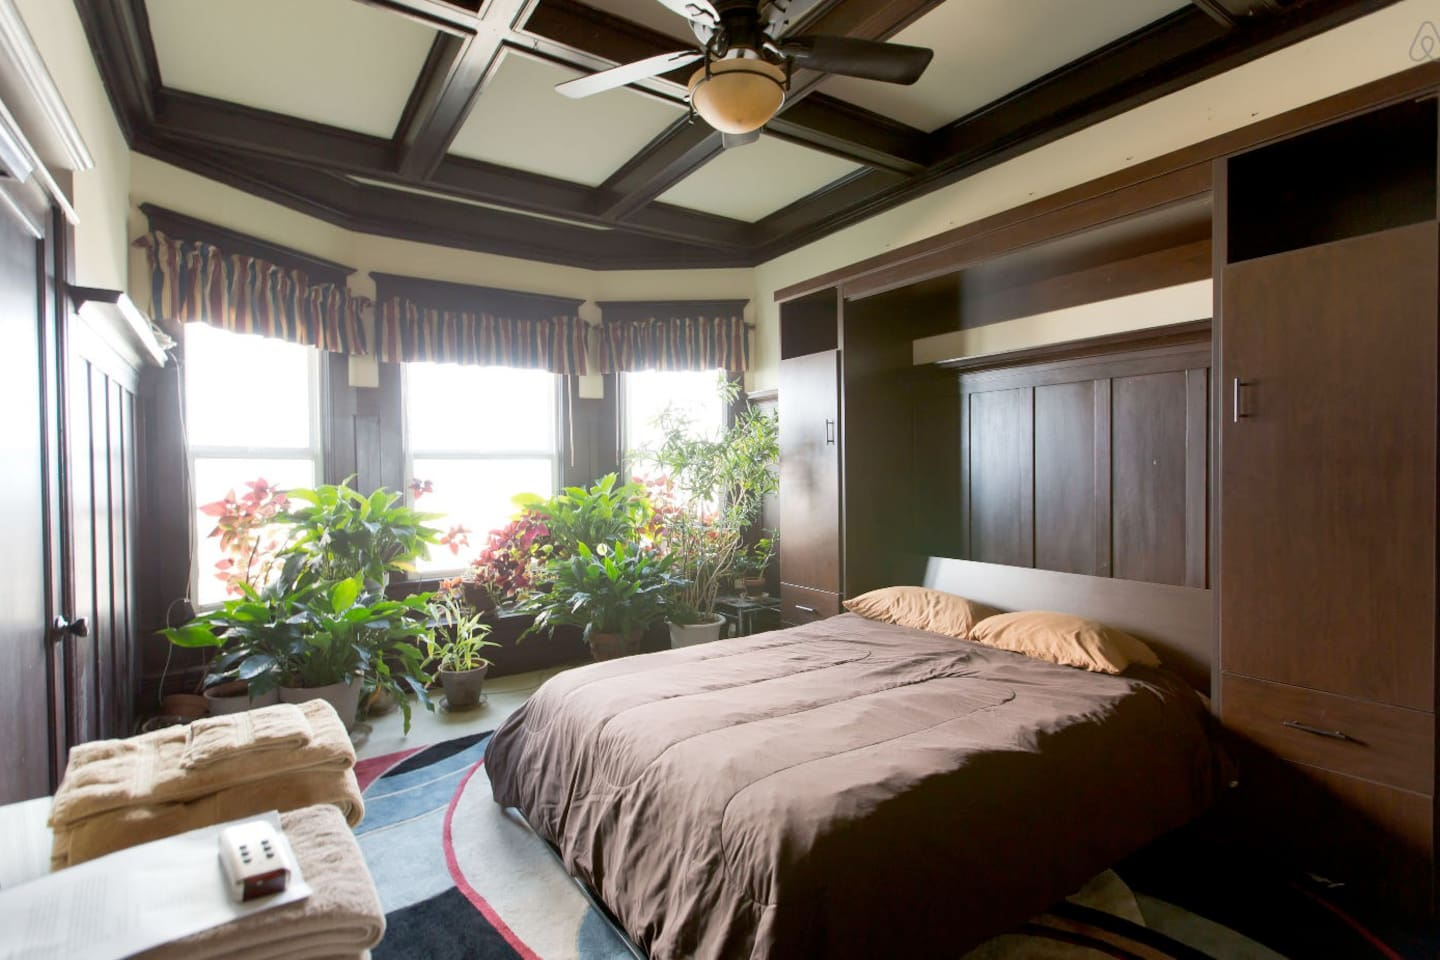 Master bedroom with lush foliage and an awesome view.